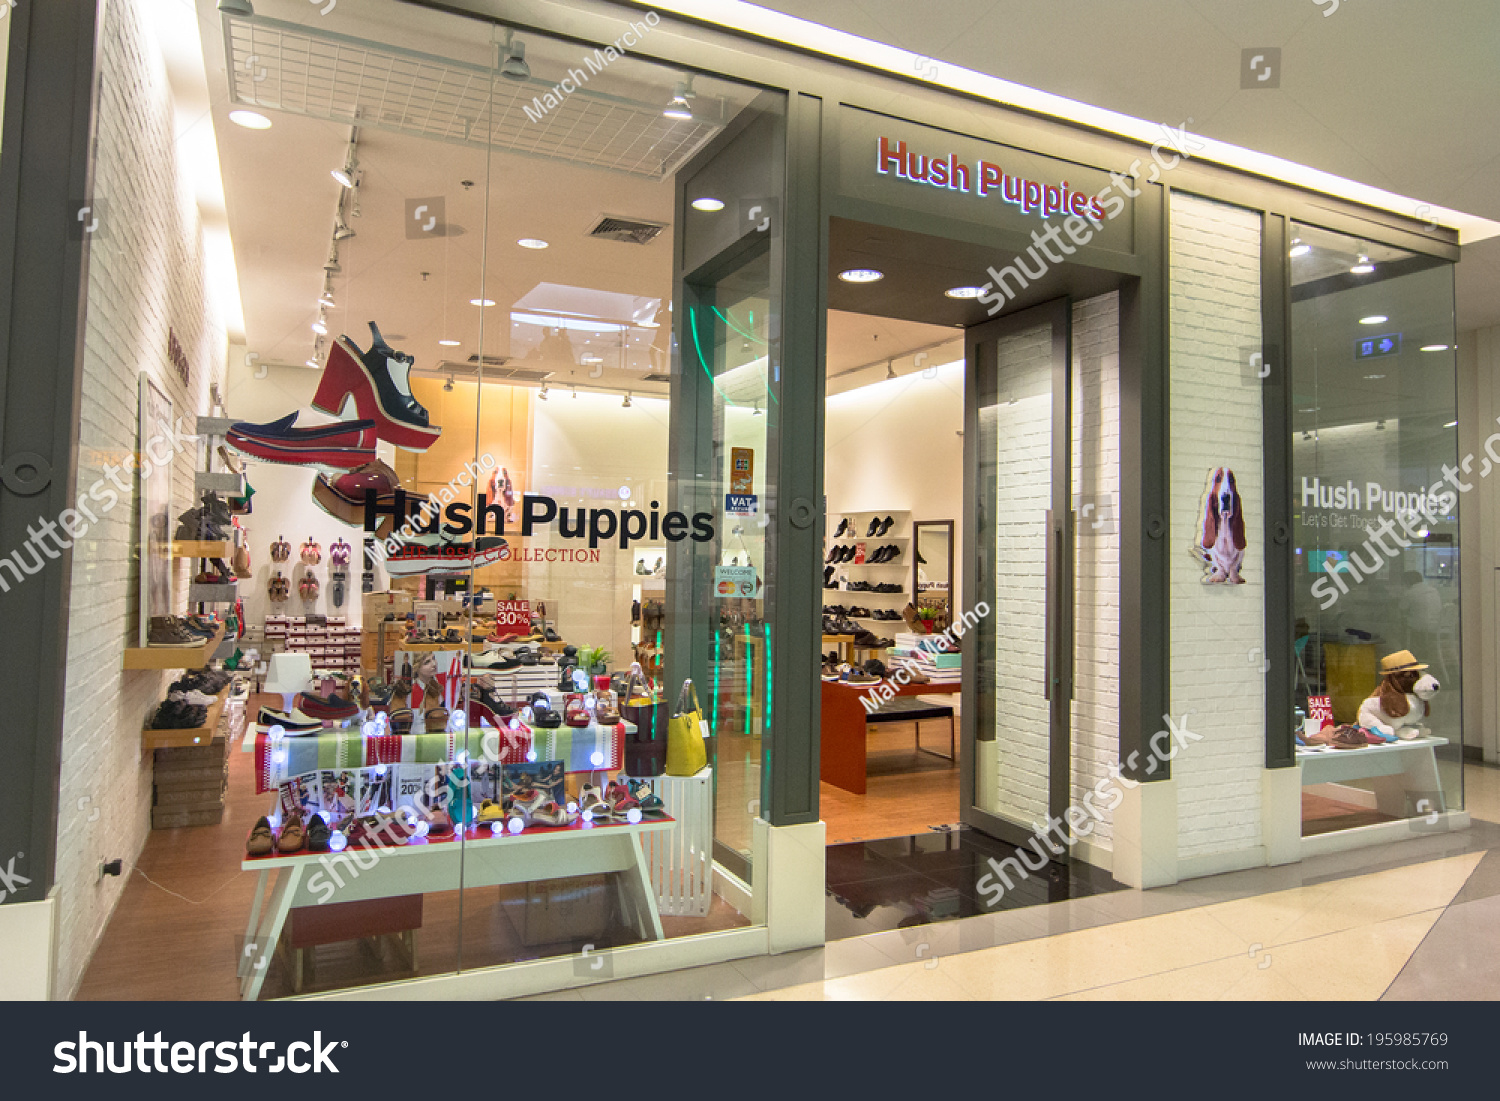 bangkok may 29 hush puppies store stock photo 195985769 shutterstock. Black Bedroom Furniture Sets. Home Design Ideas